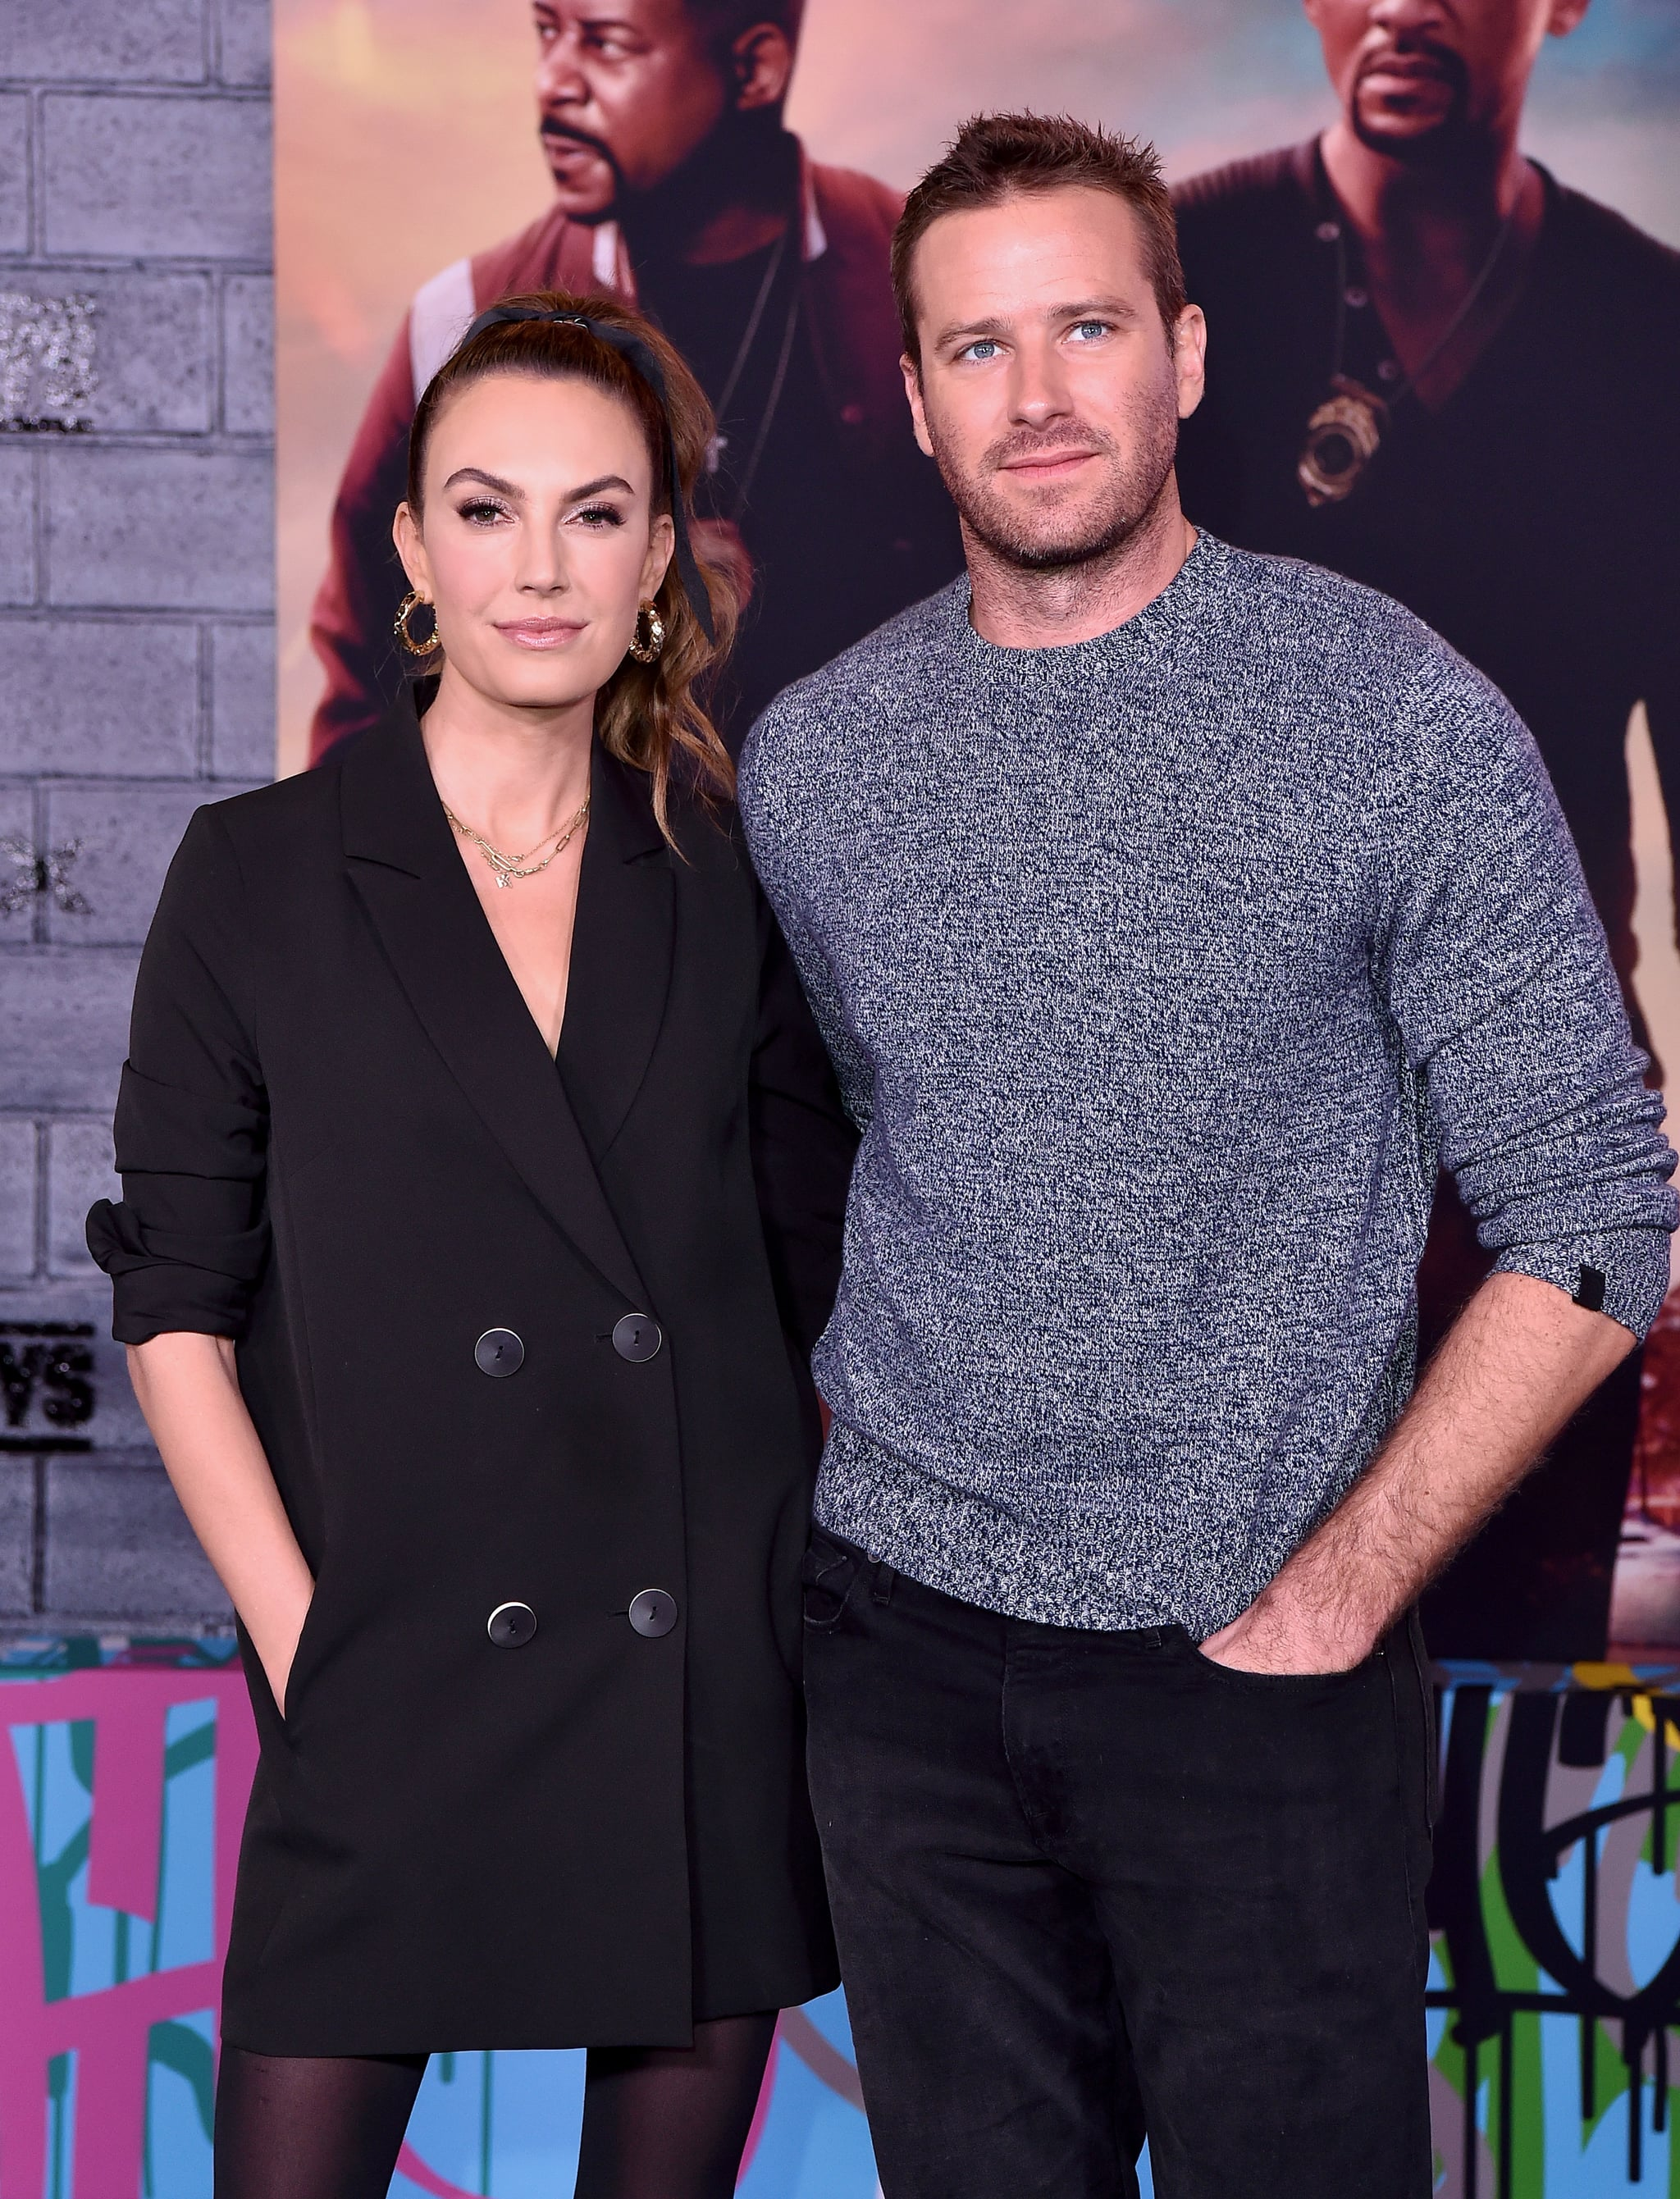 HOLLYWOOD, CALIFORNIA - JANUARY 14: Elizabeth Chambers and Armie Hammer attend the Premiere of Columbia Pictures'